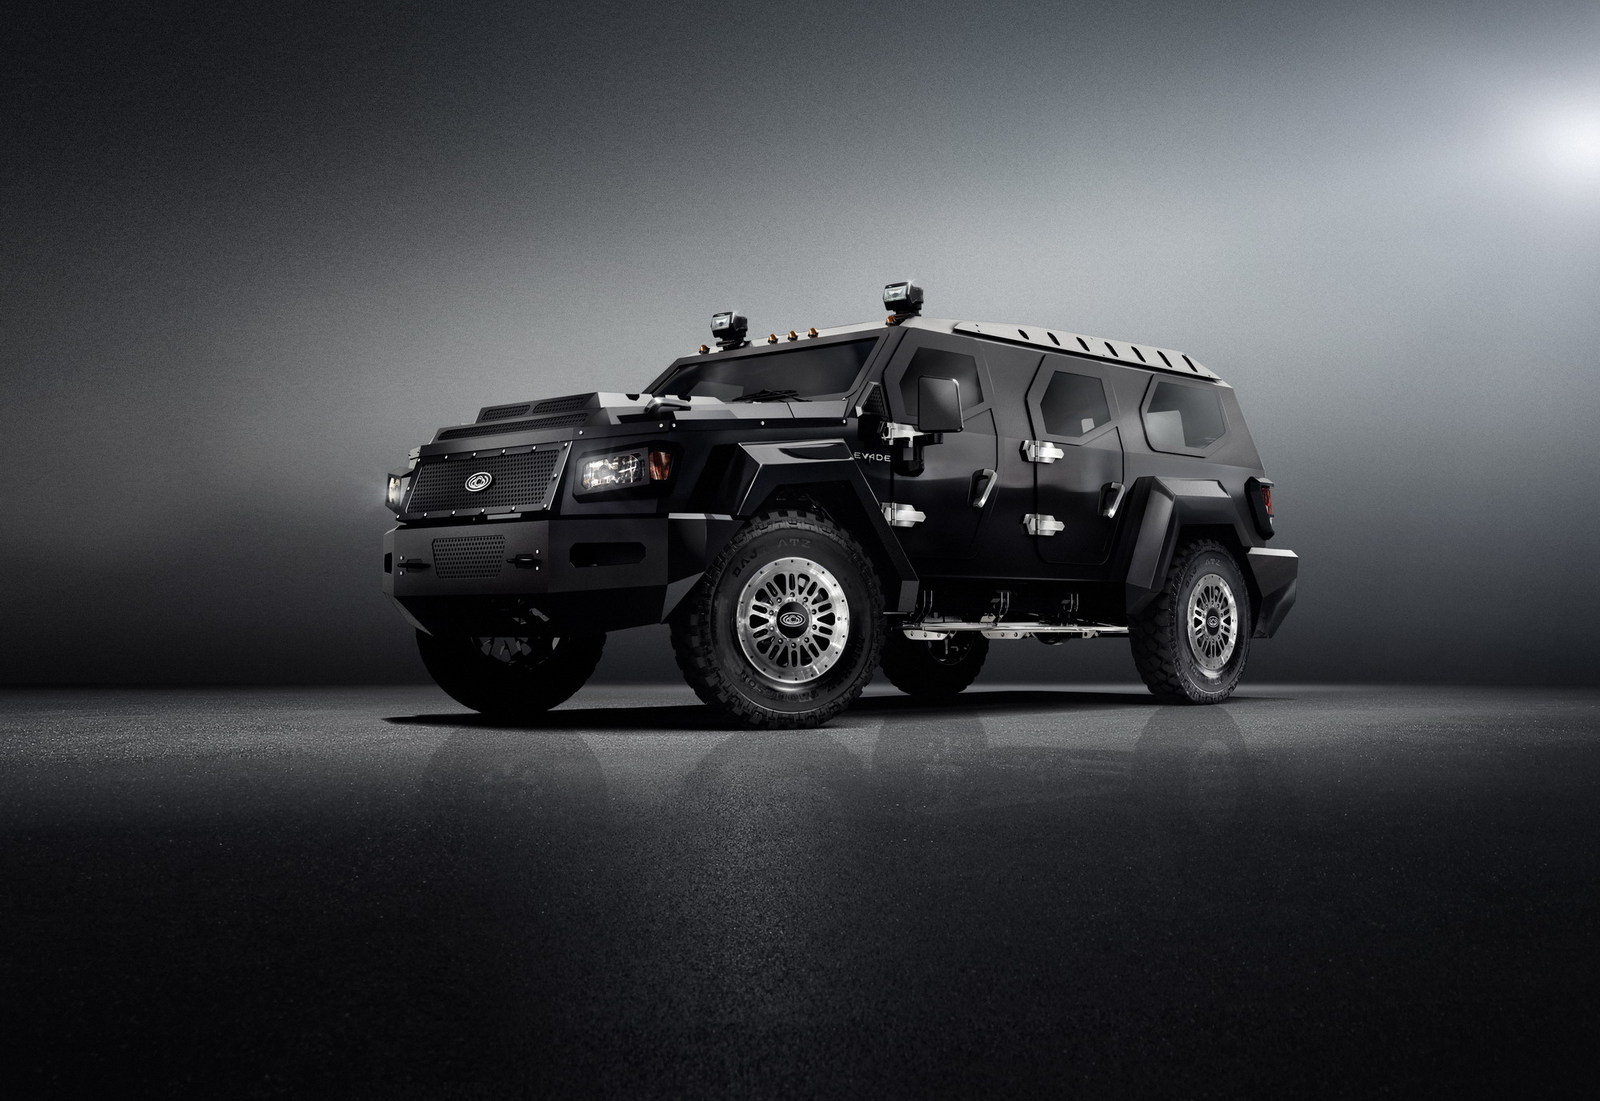 http://pictures.topspeed.com/IMG/crop/201208/conquest-evade-1_1600x0w.jpg